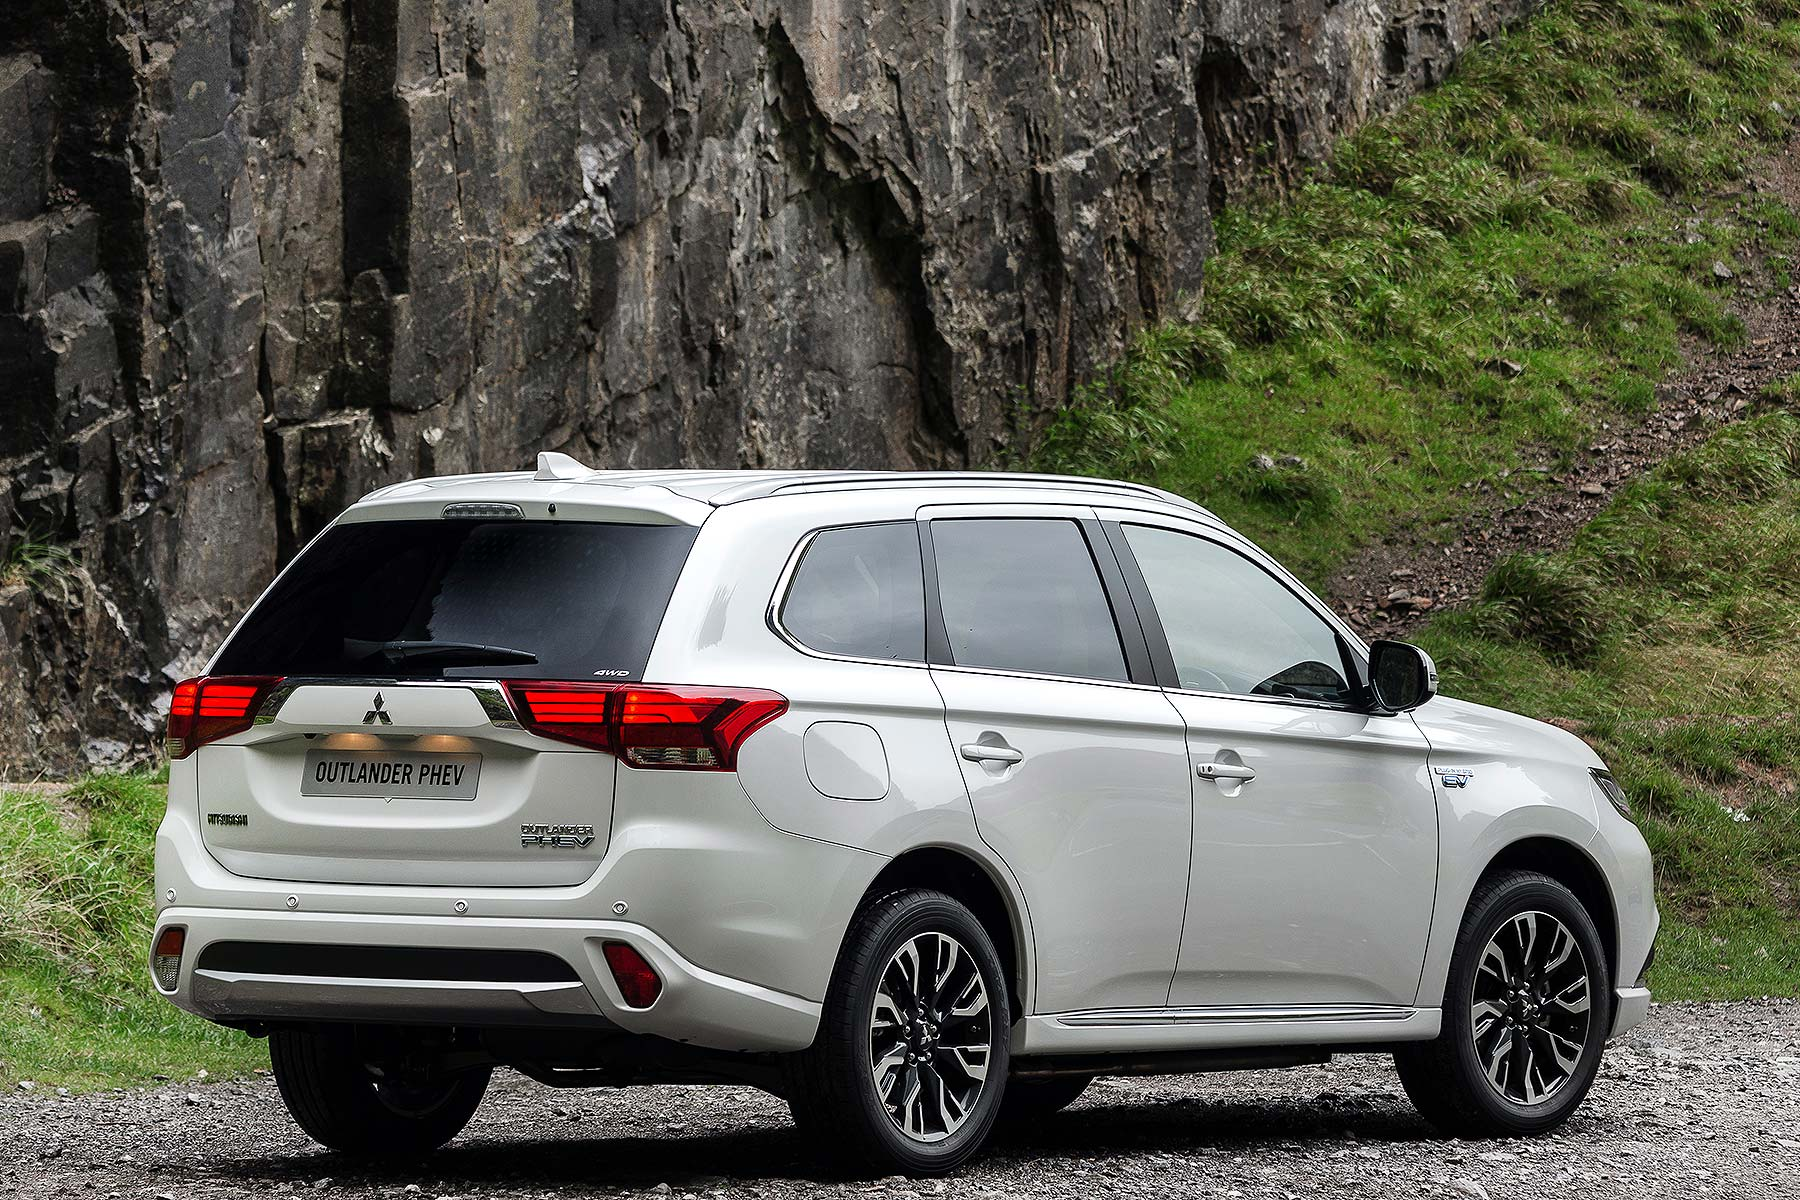 2016 Mitsubishi Outlander PHEV review: UK first drive